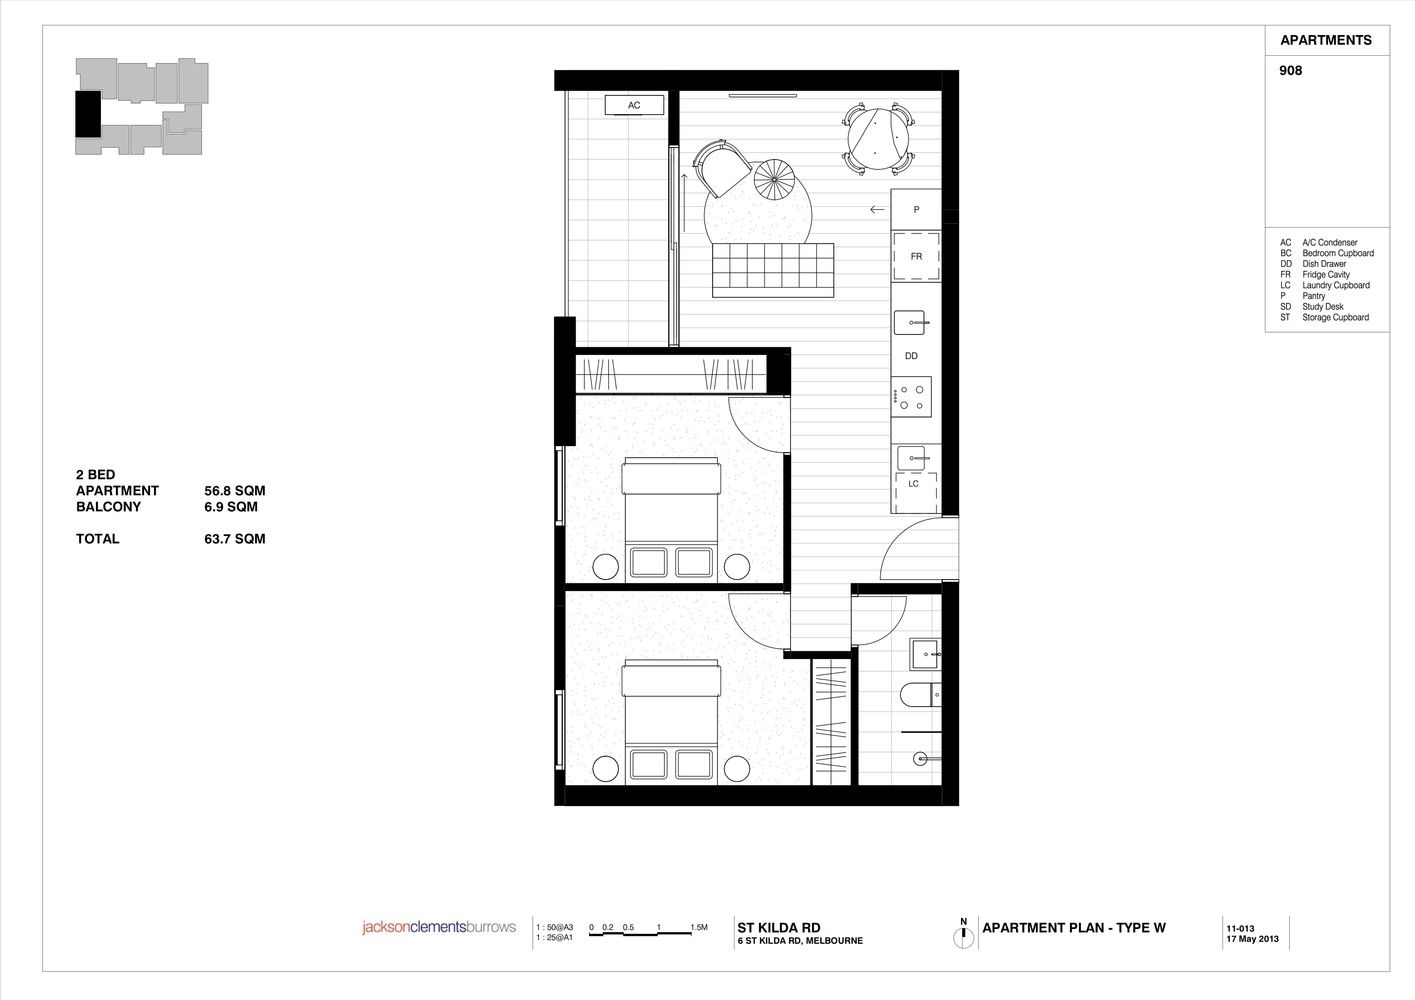 Gallery Of The Icon Jackson Clements Burrows 58 Dream House Plans House Plans How To Plan